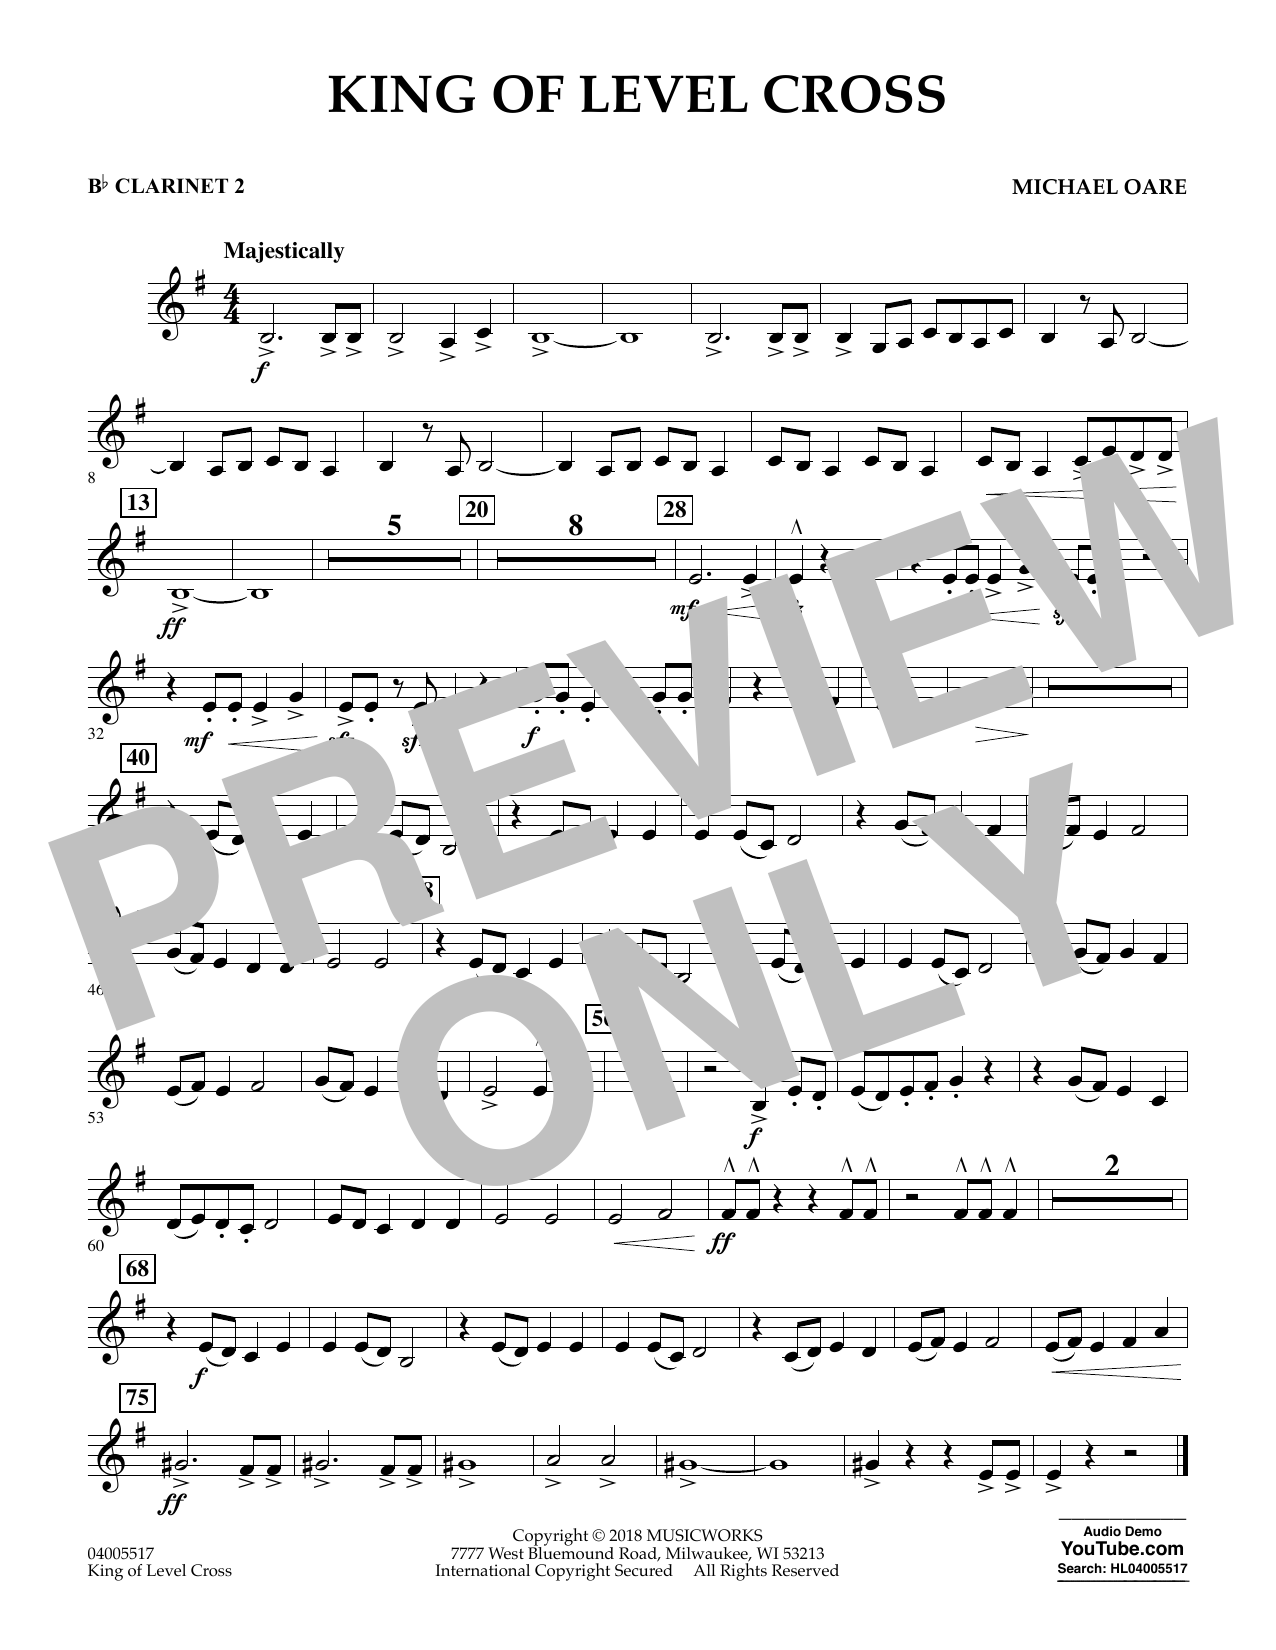 Michael Oare King of Level Cross - Bb Clarinet 2 sheet music notes and chords. Download Printable PDF.